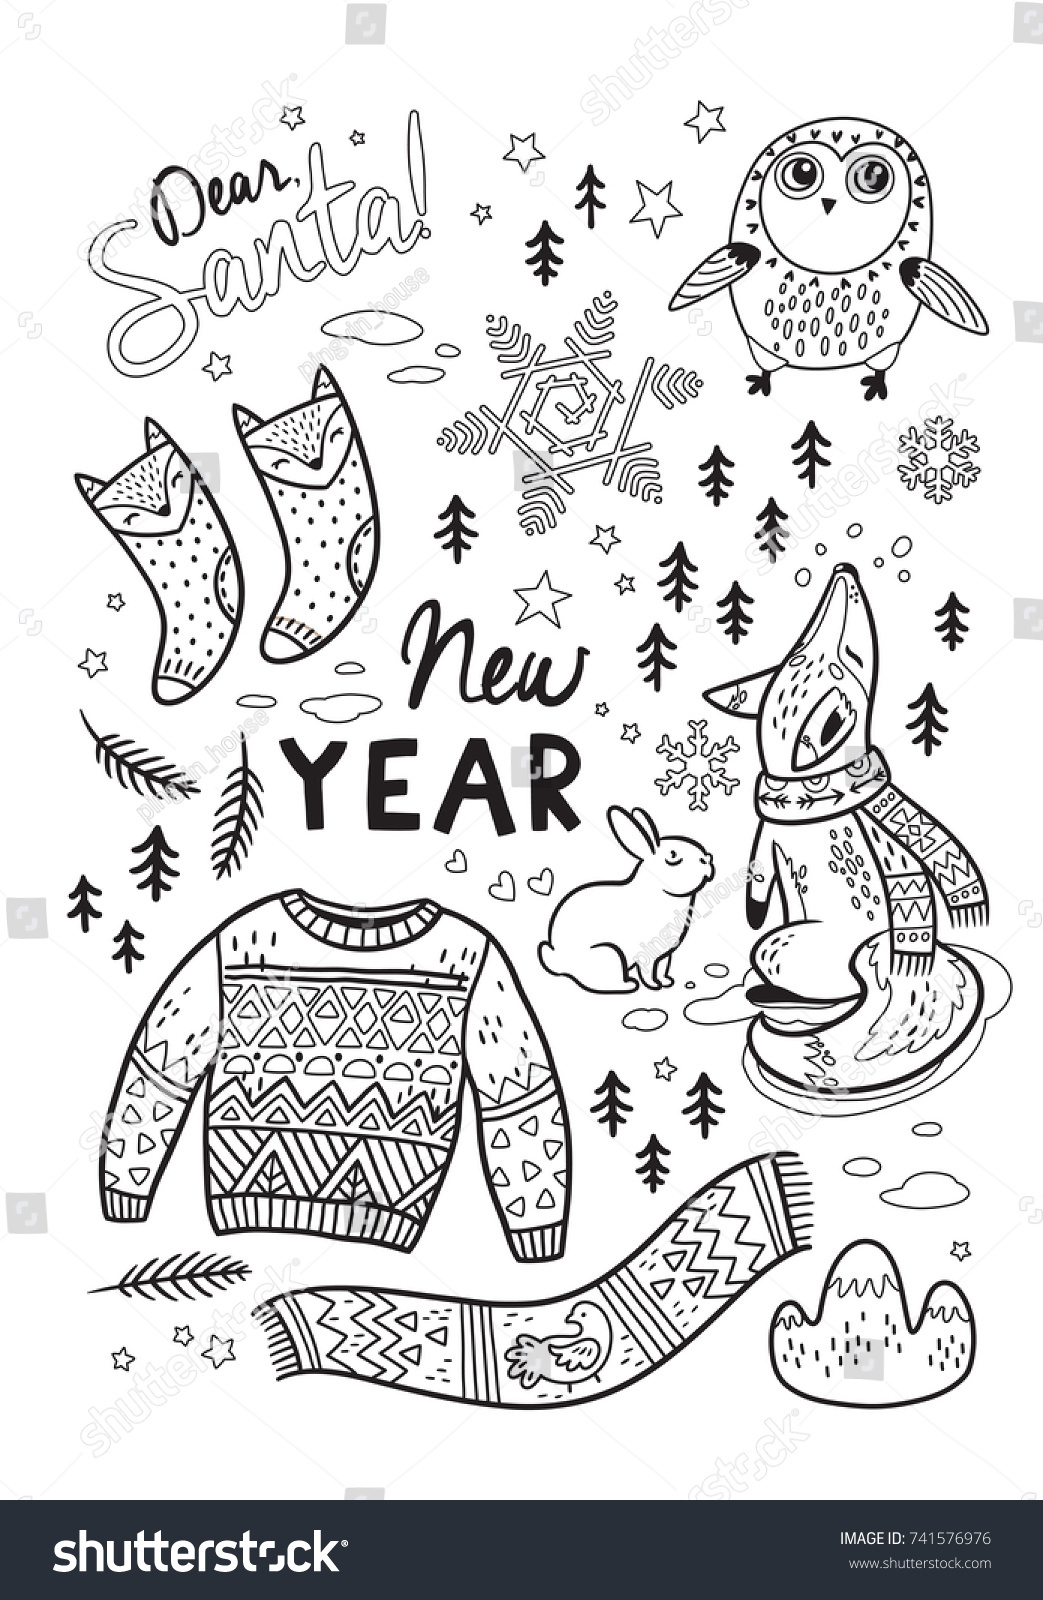 Dear Santa Coloring With New Year Card Winter Stock Vector Royalty Free